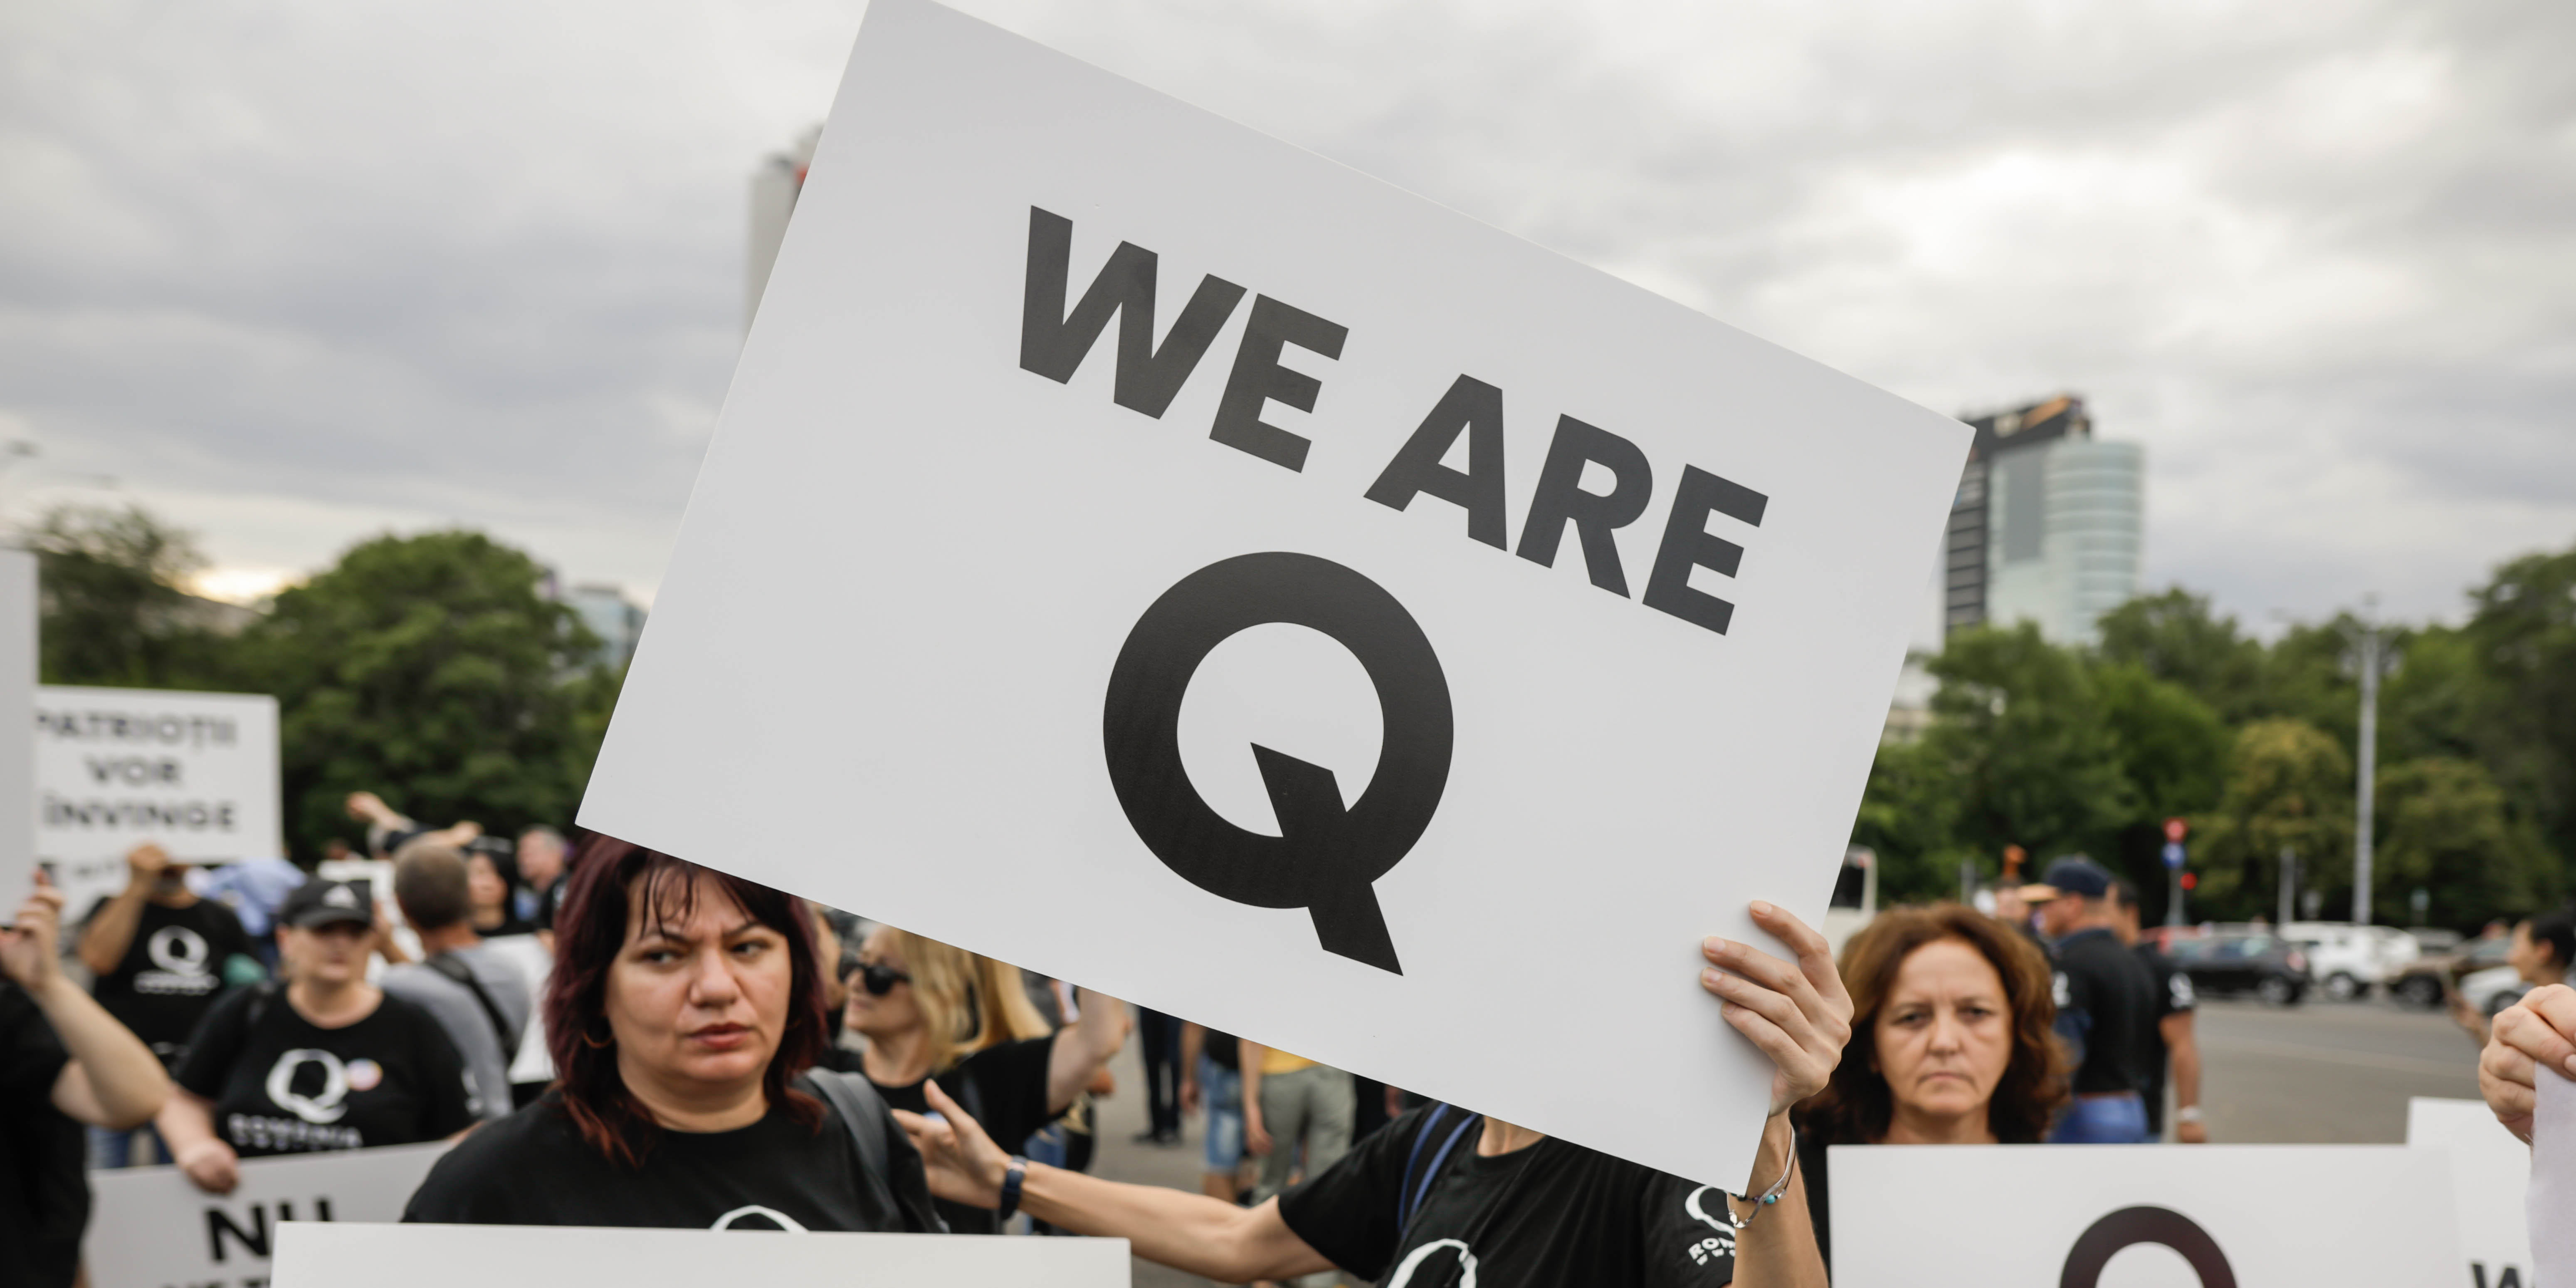 A person holding a QAnon sign that says 'We are Q'